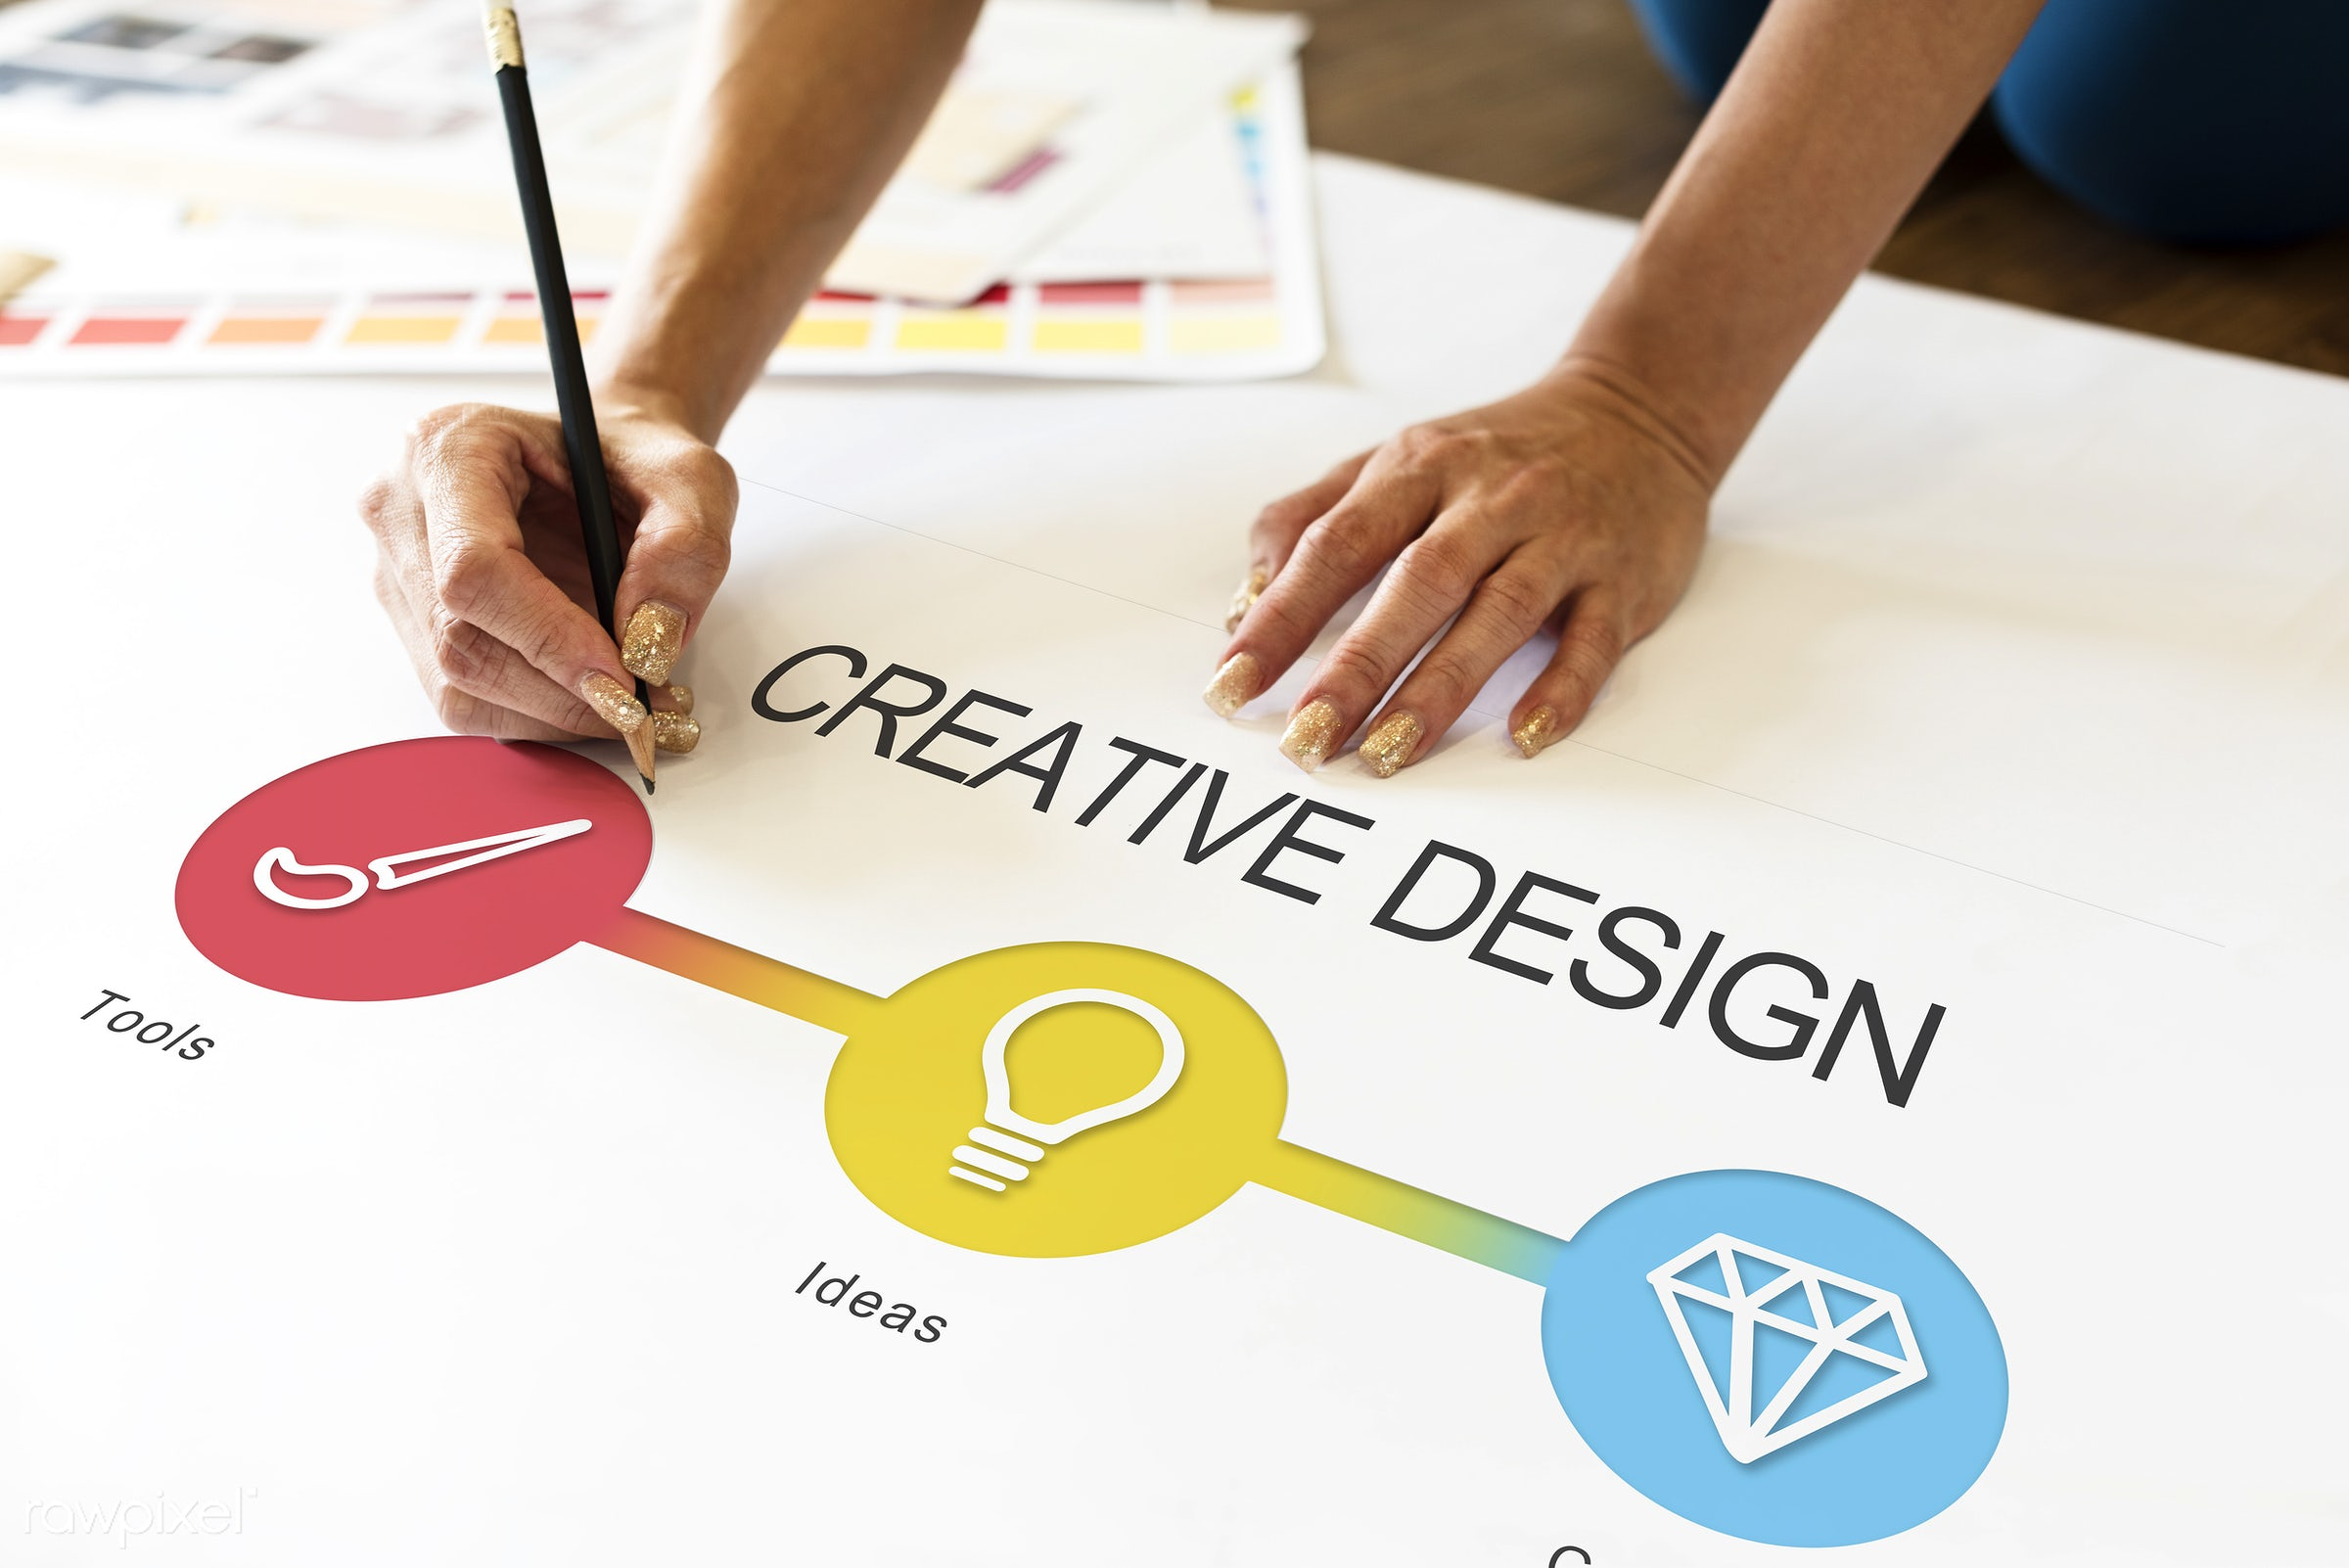 art, content, creation, creative, creativity, design, development, diagram, diamond, digital, drawing, graphic, hands, ideas...